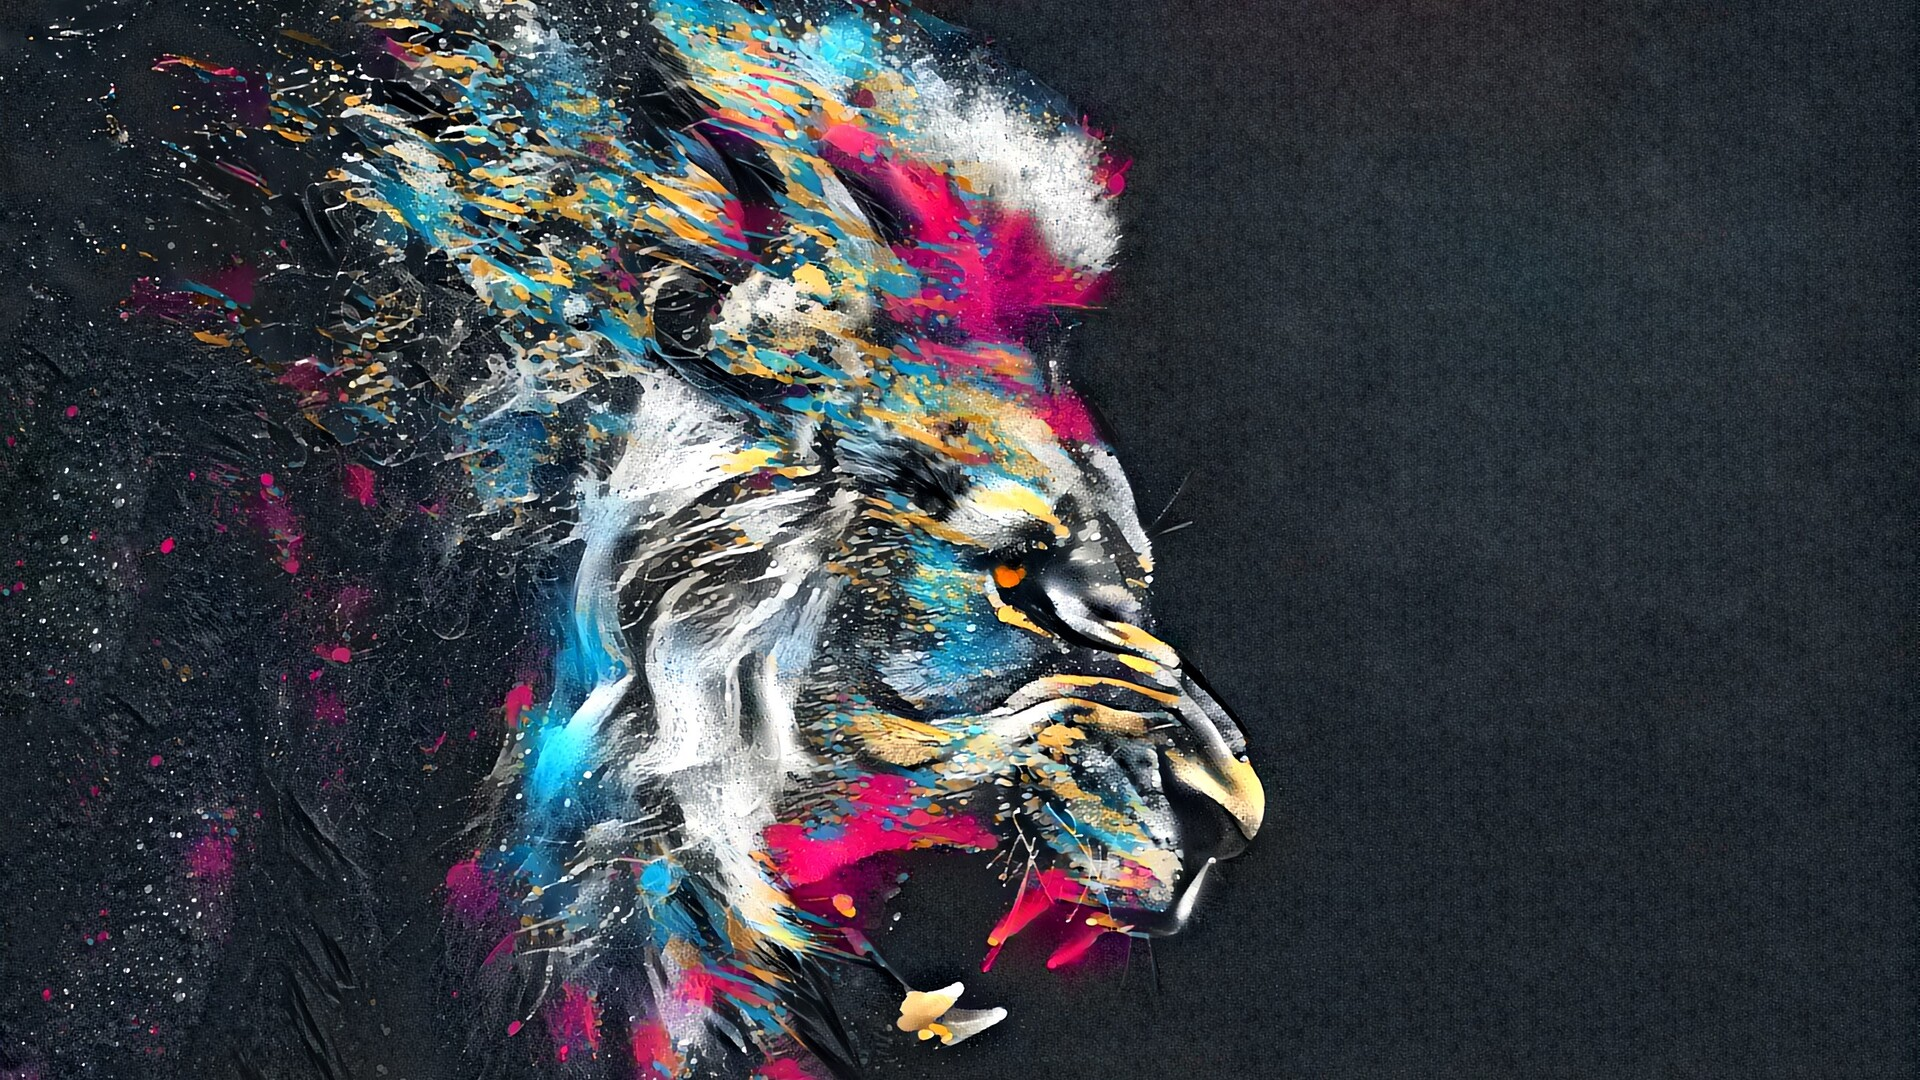 1920x1080 Abstracto Full Hd 1920x1080: 1920x1080 Abstract Artistic Colorful Lion Laptop Full HD